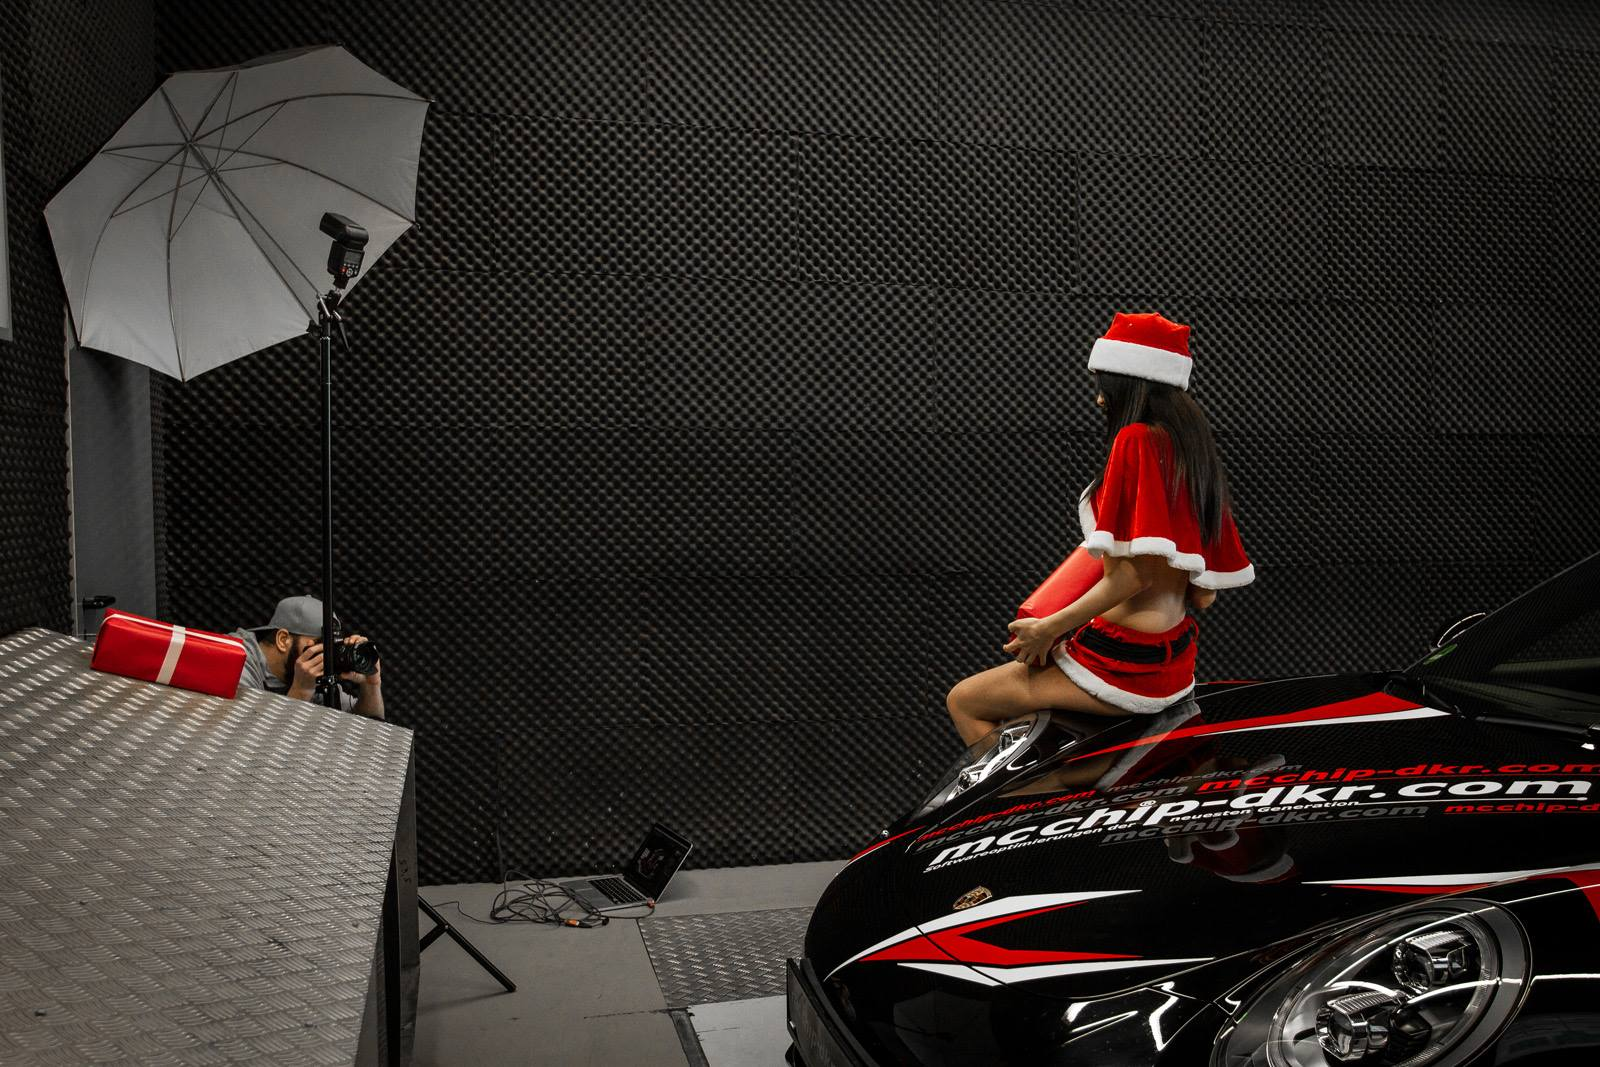 Mcchip Dkr Does Christmas Photo Shoot With Sexy Santa